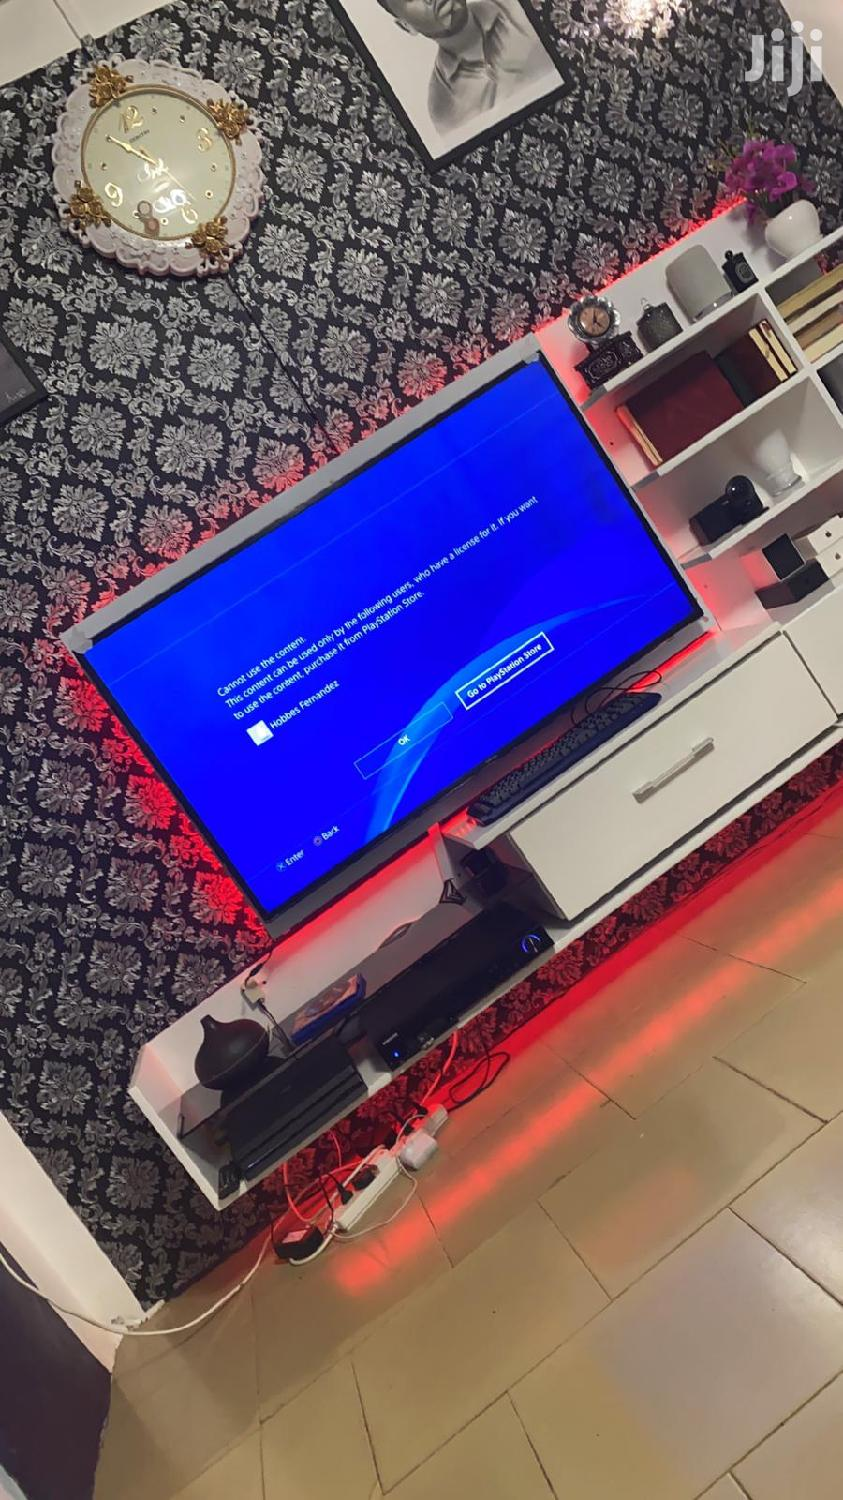 Jailbreak All Types Of PS3 And Install GAMES (HOME SERVICE)